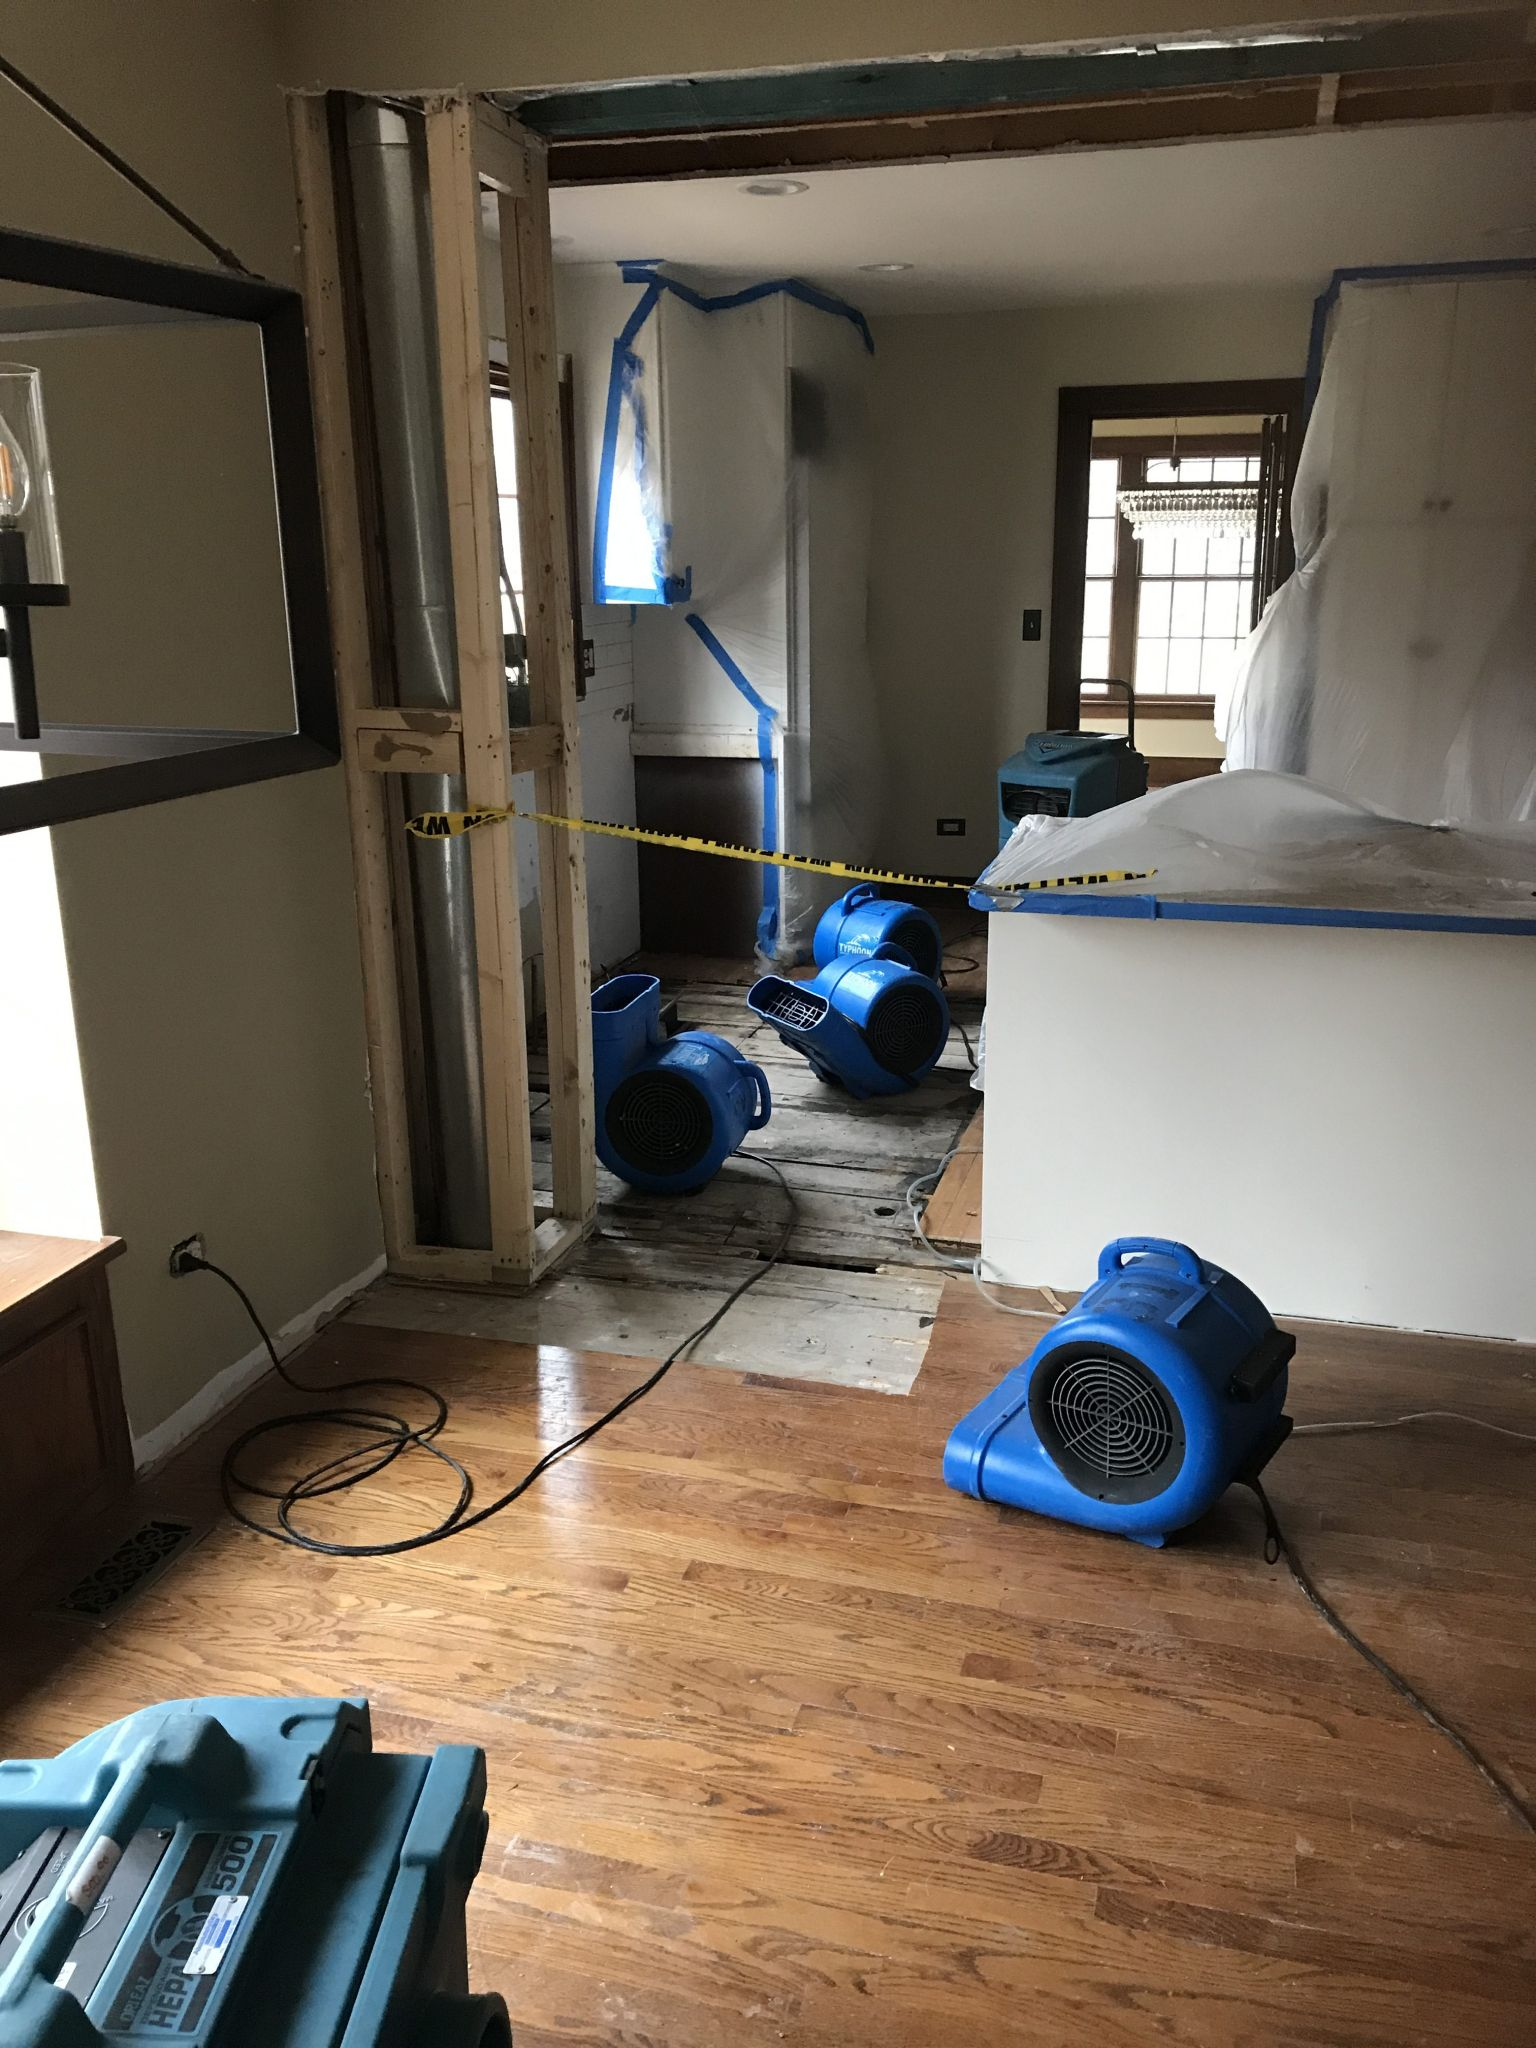 Drying out water damage leak in Portland home